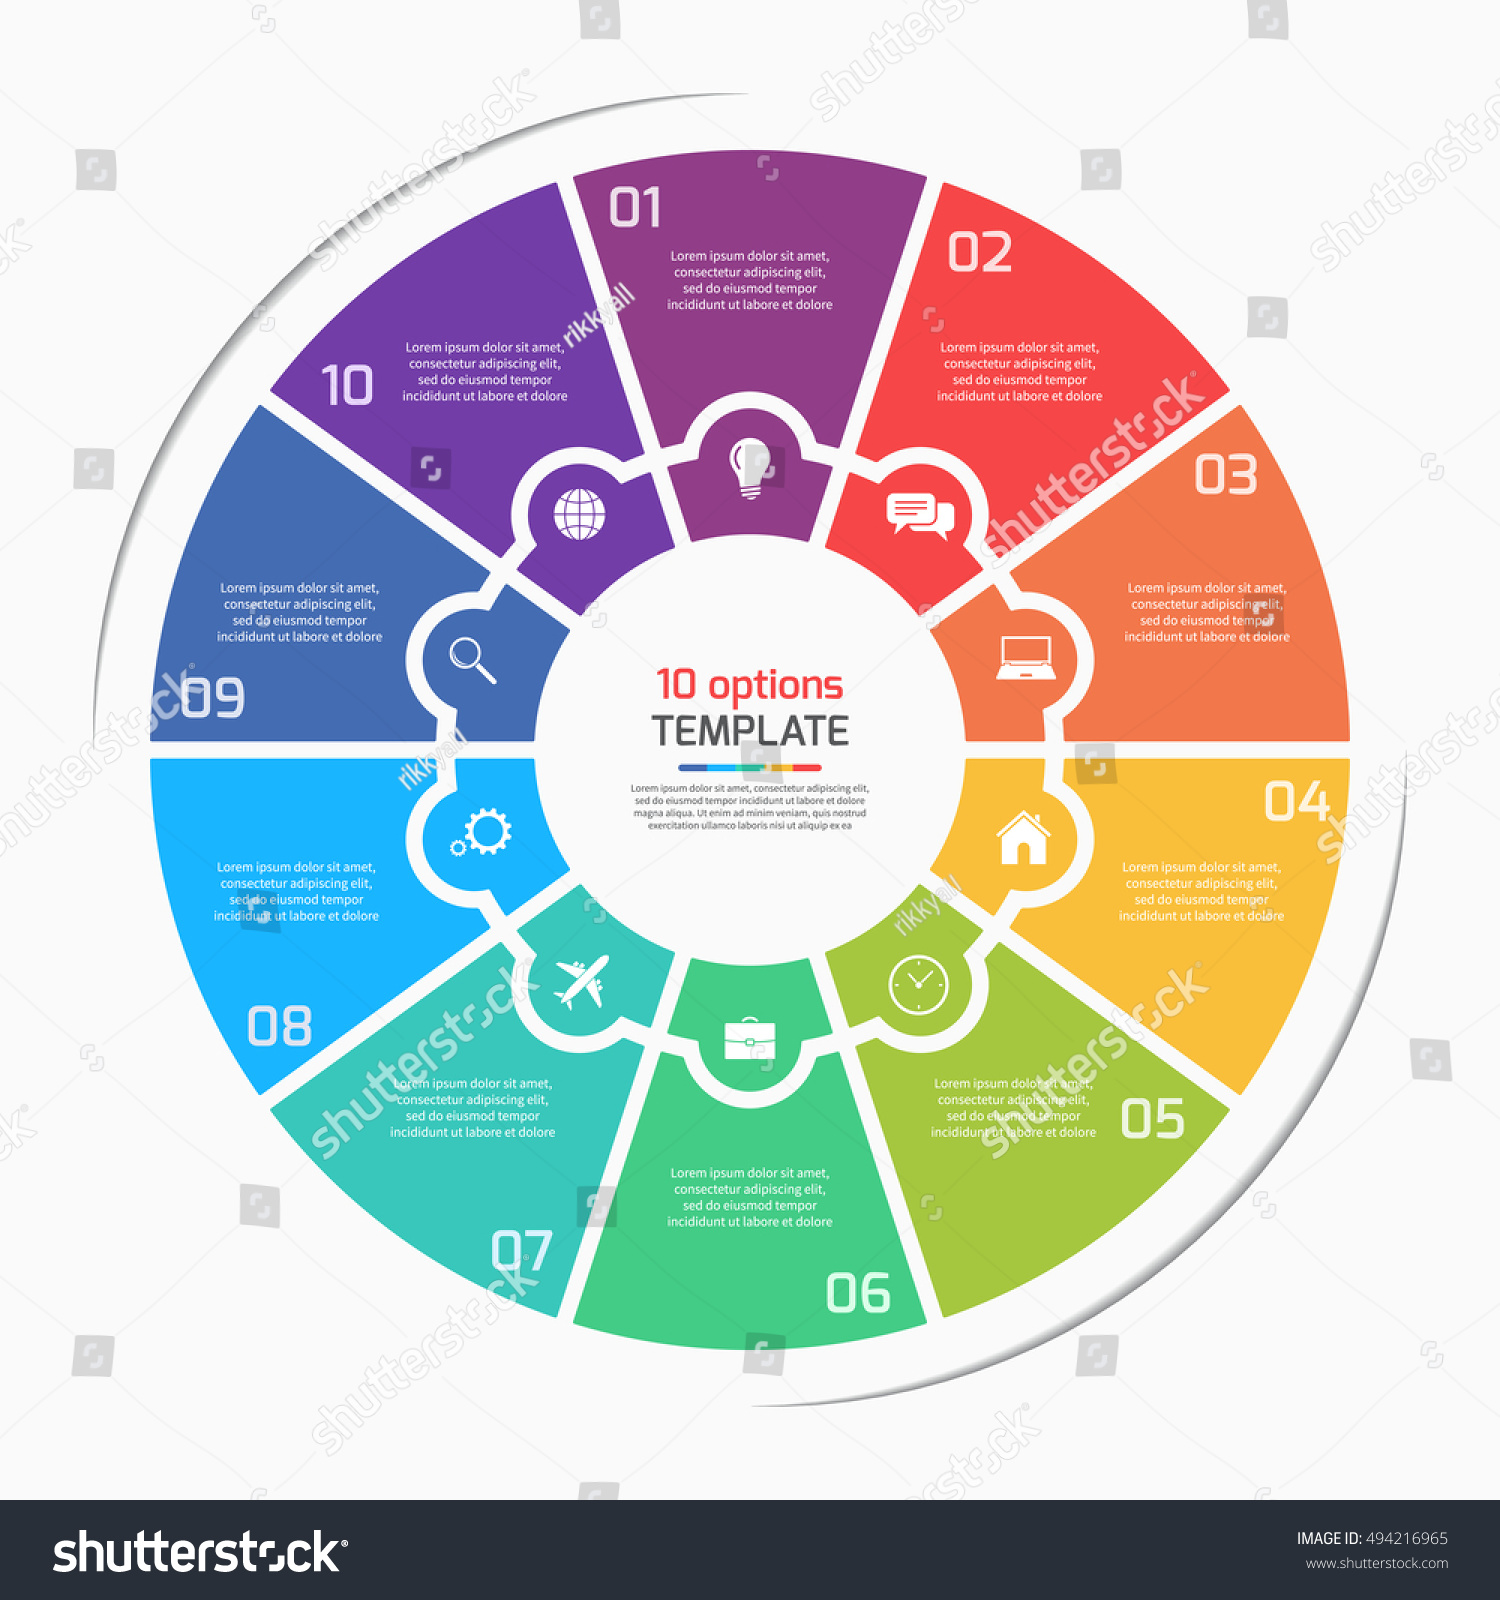 Flat style pie chart circle infographic stock vector 494216965 flat style pie chart circle infographic template with 10 options steps parts processes nvjuhfo Images